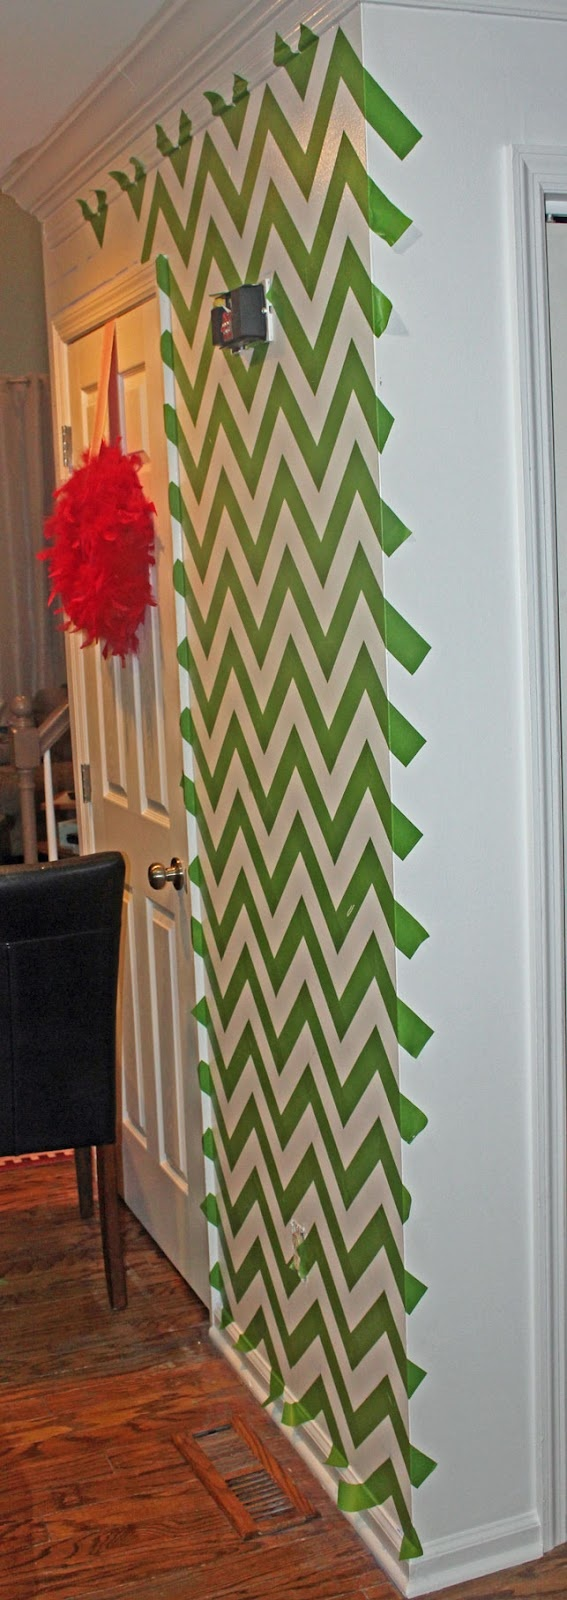 How To Paint Chevron Stripes On A Wall. NEED TO KNOW